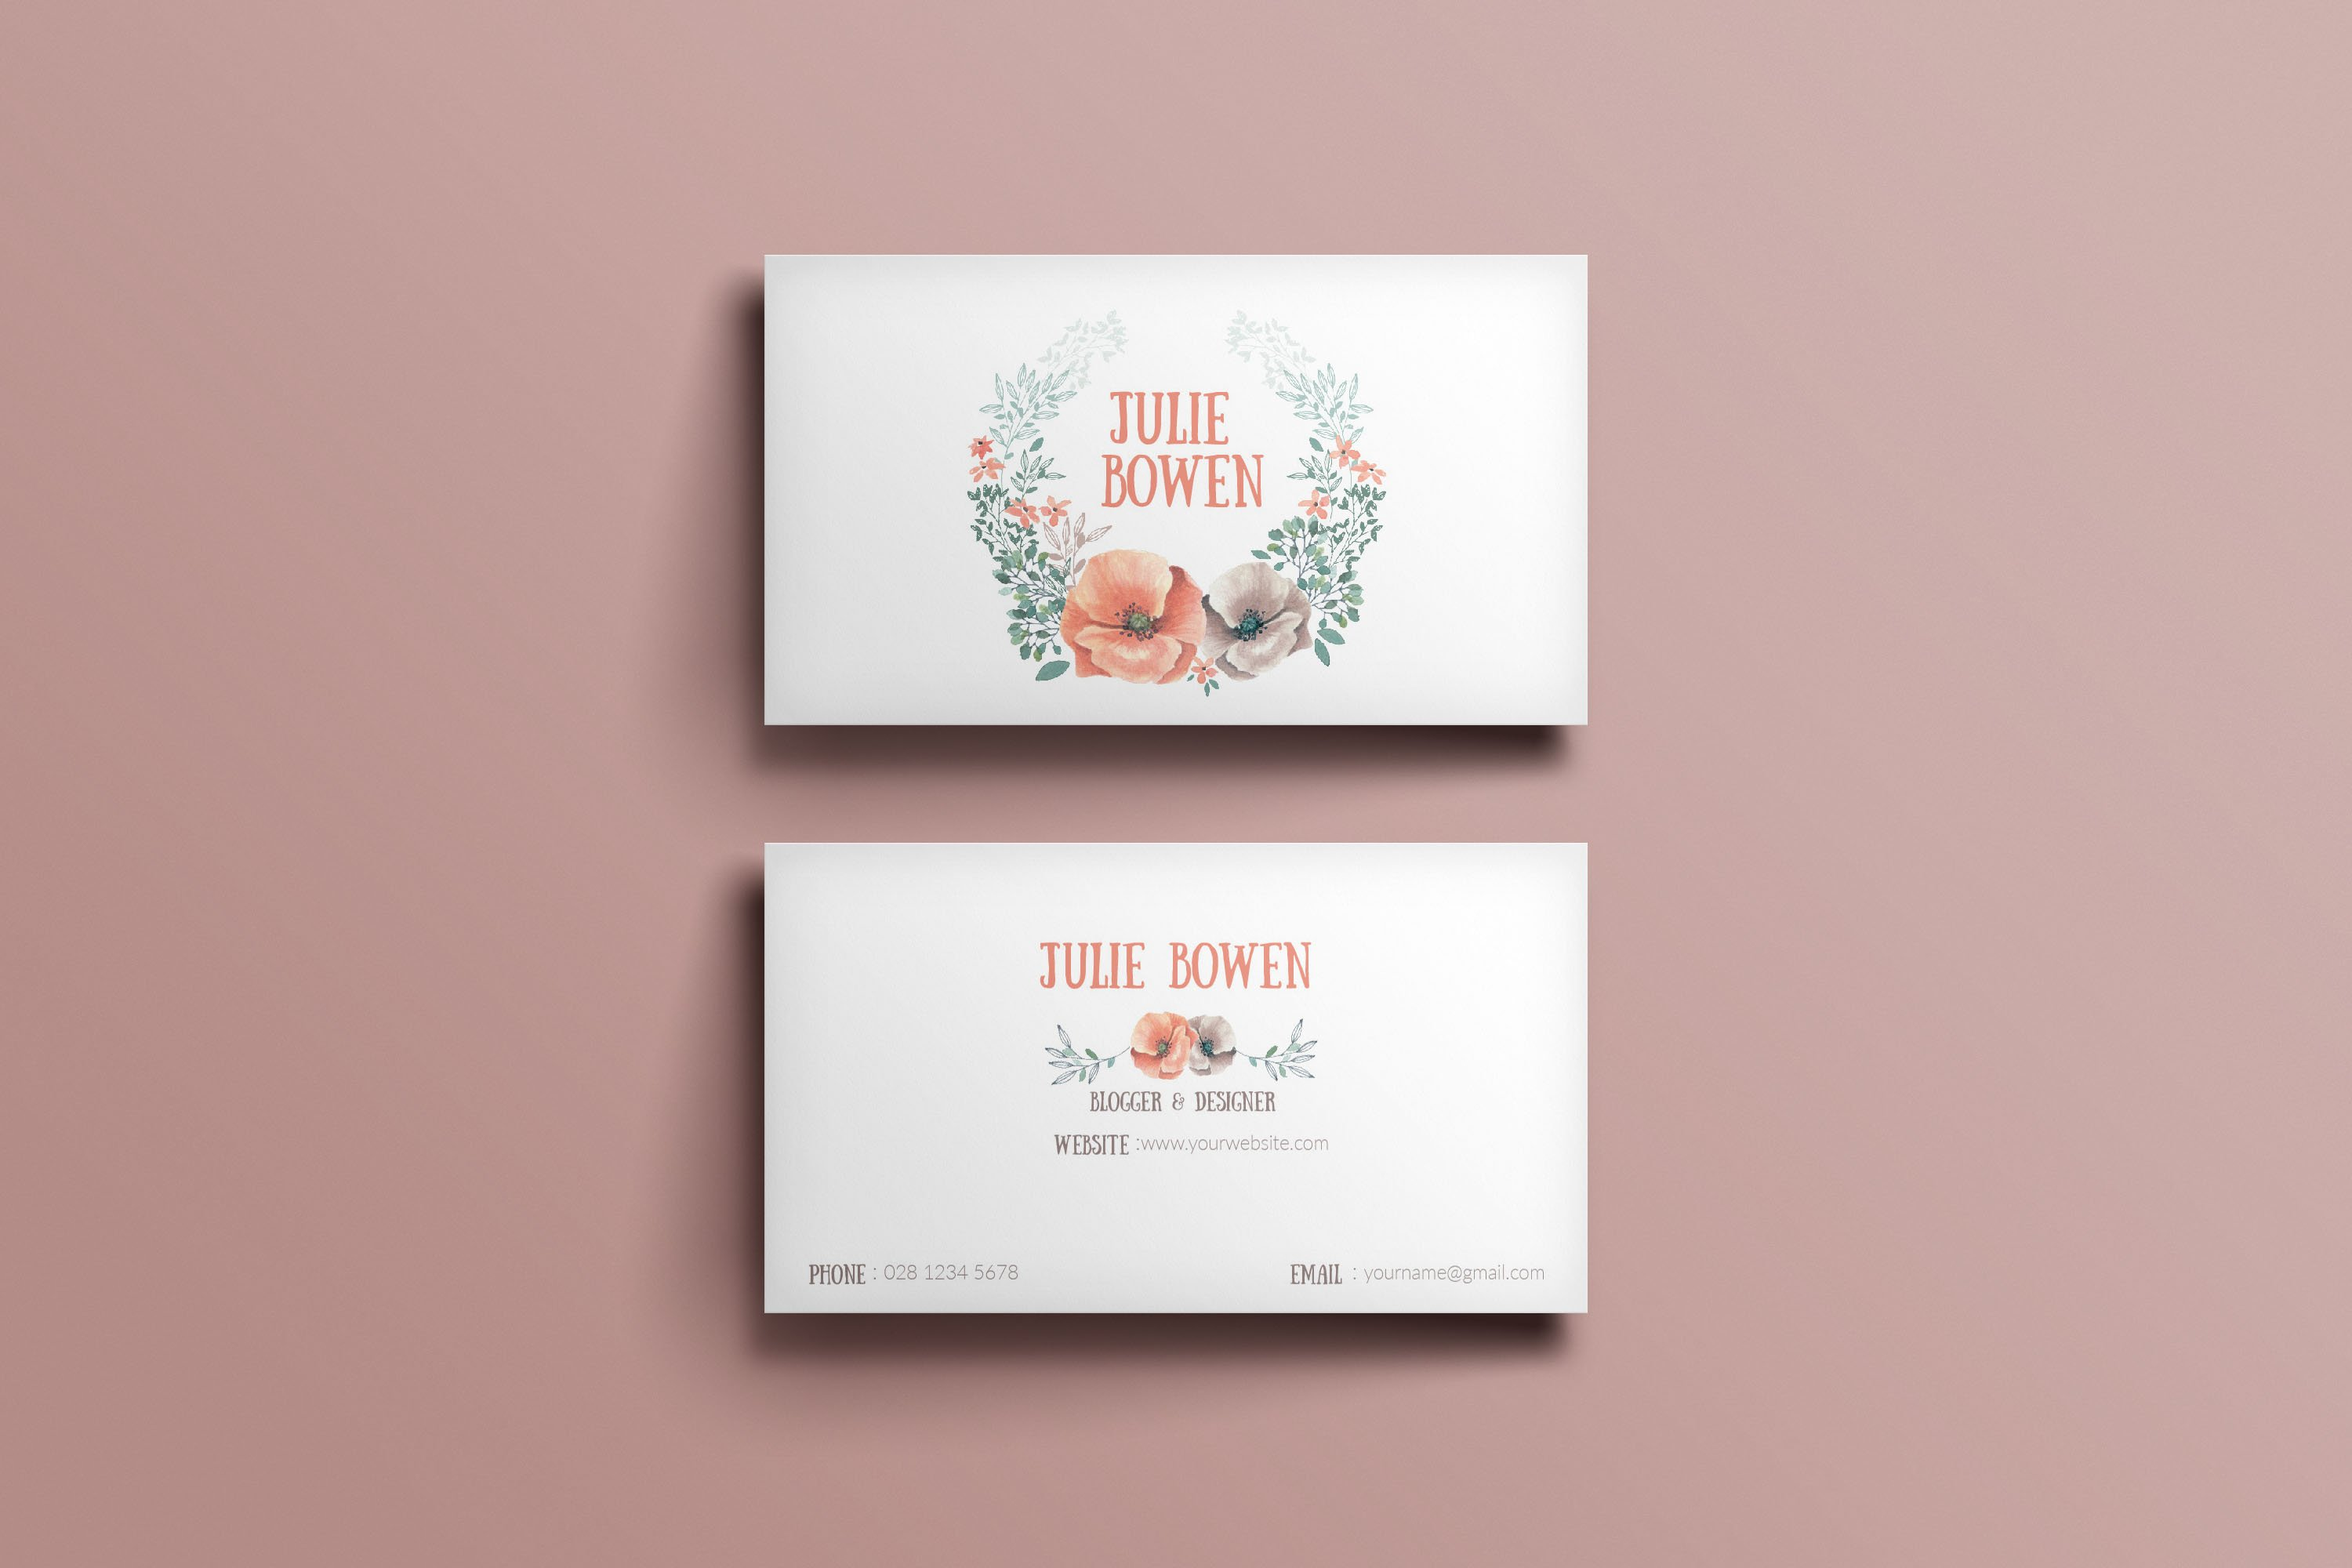 Floral business card template business card templates creative floral business card template business card templates creative market cheaphphosting Gallery